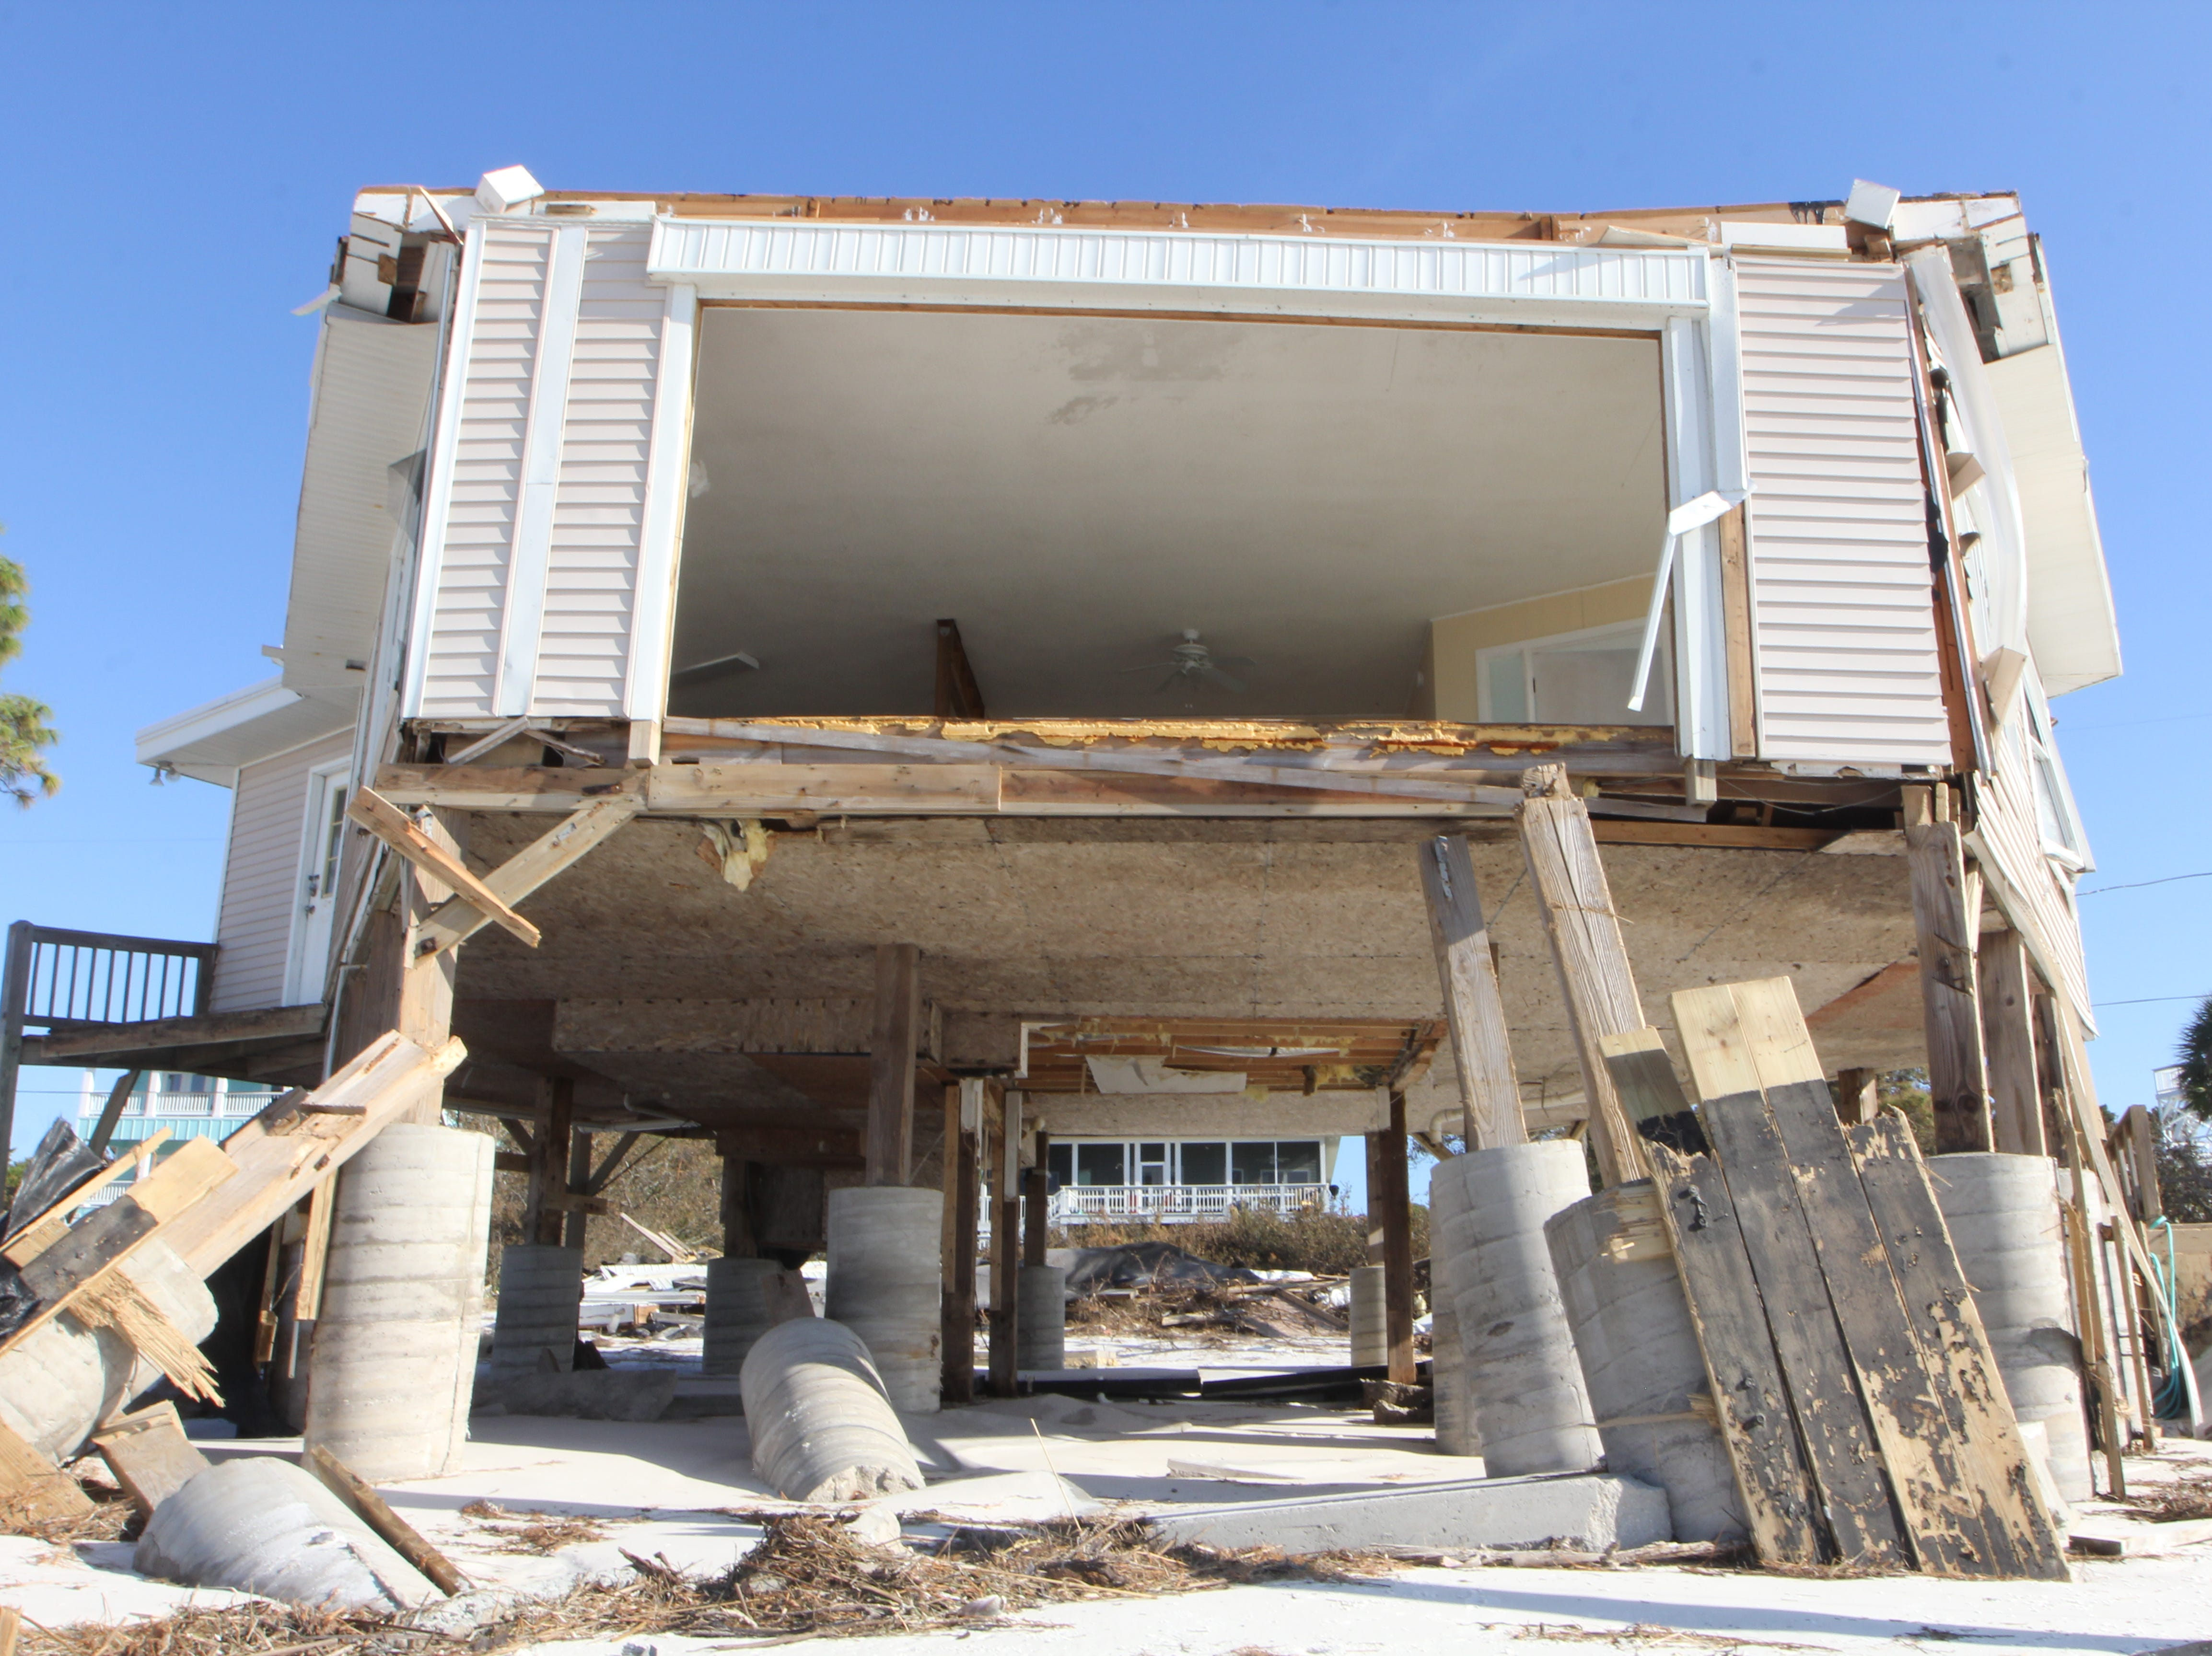 The front of a house is exposed to the sea after being ripped apart by Hurricane Michael